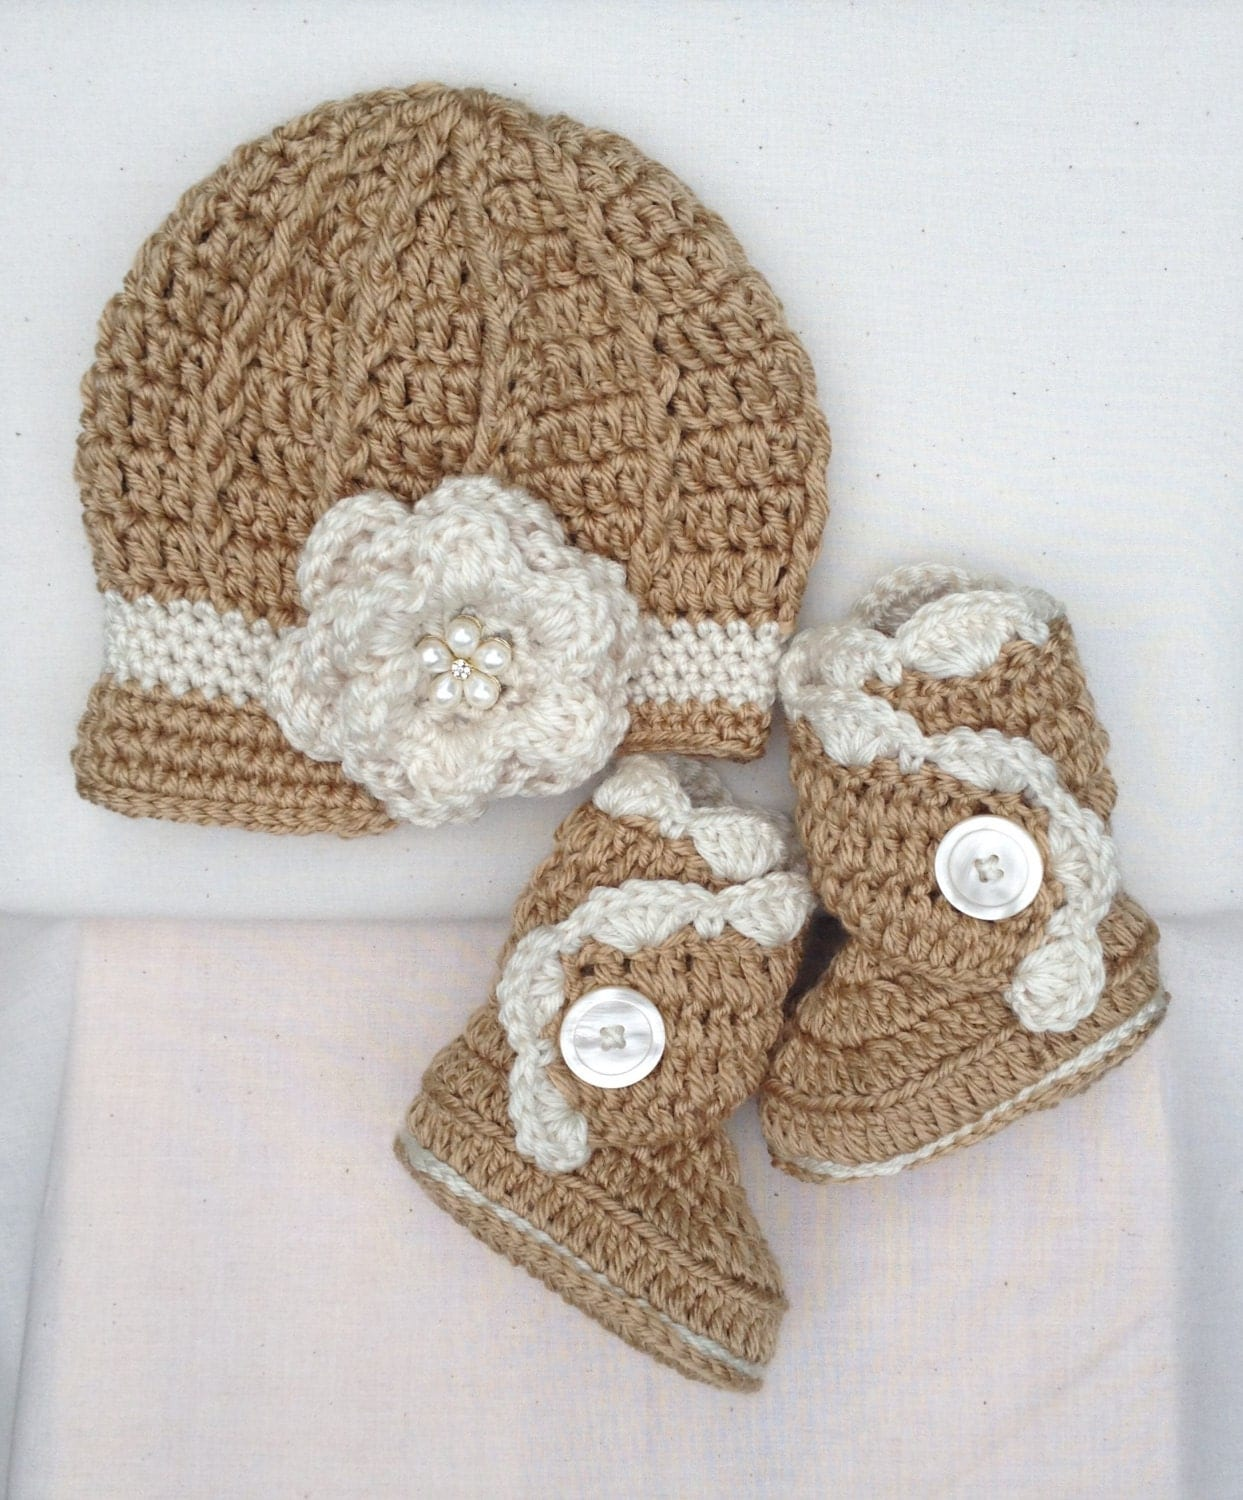 crochet baby booties diagram how to make a conceptual framework hat and boots shoes girl